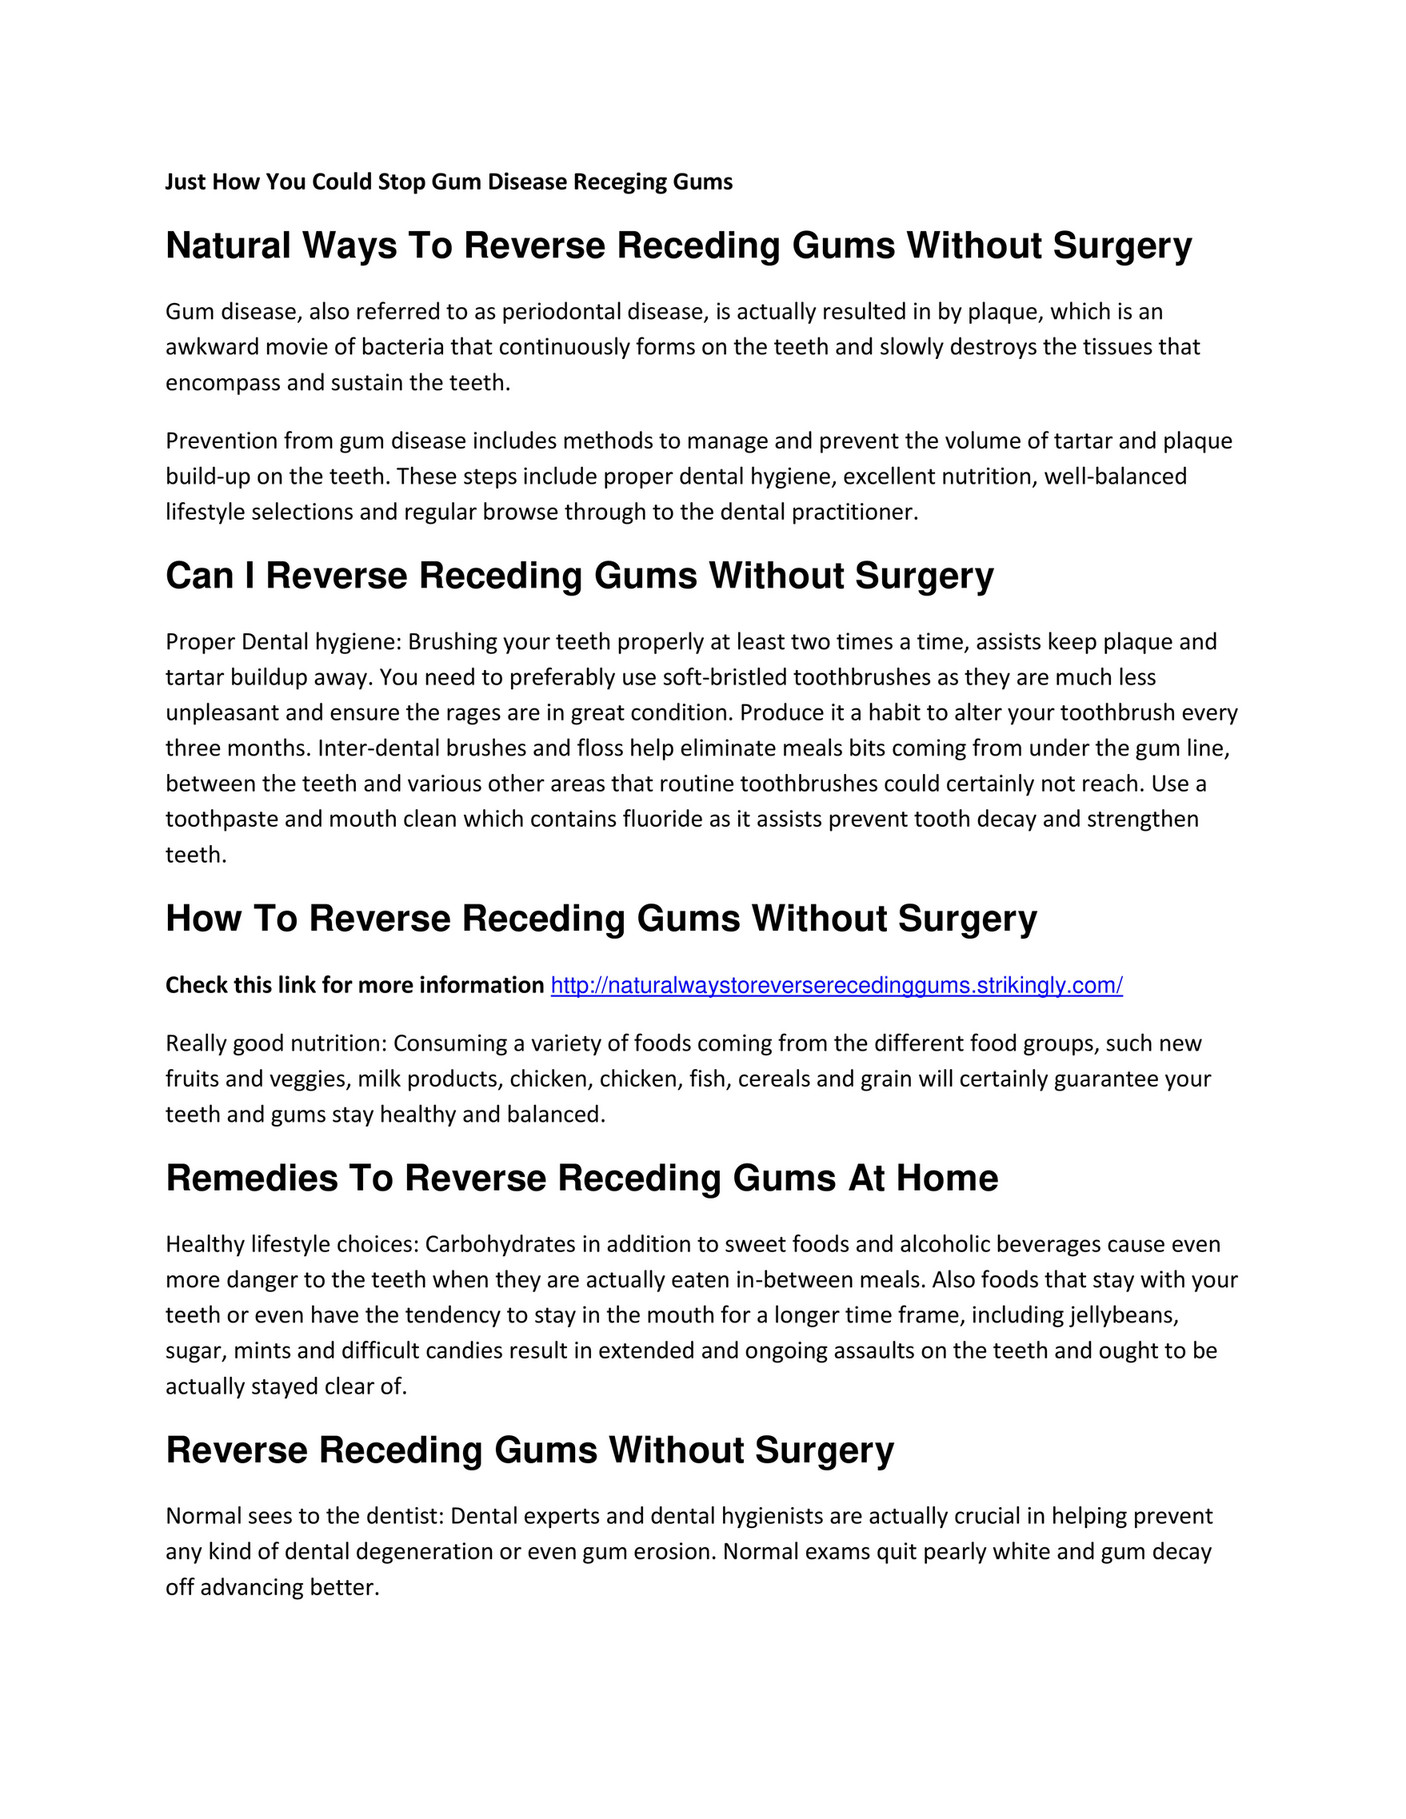 My publications - How To Reverse Receding Gums Without Surgery